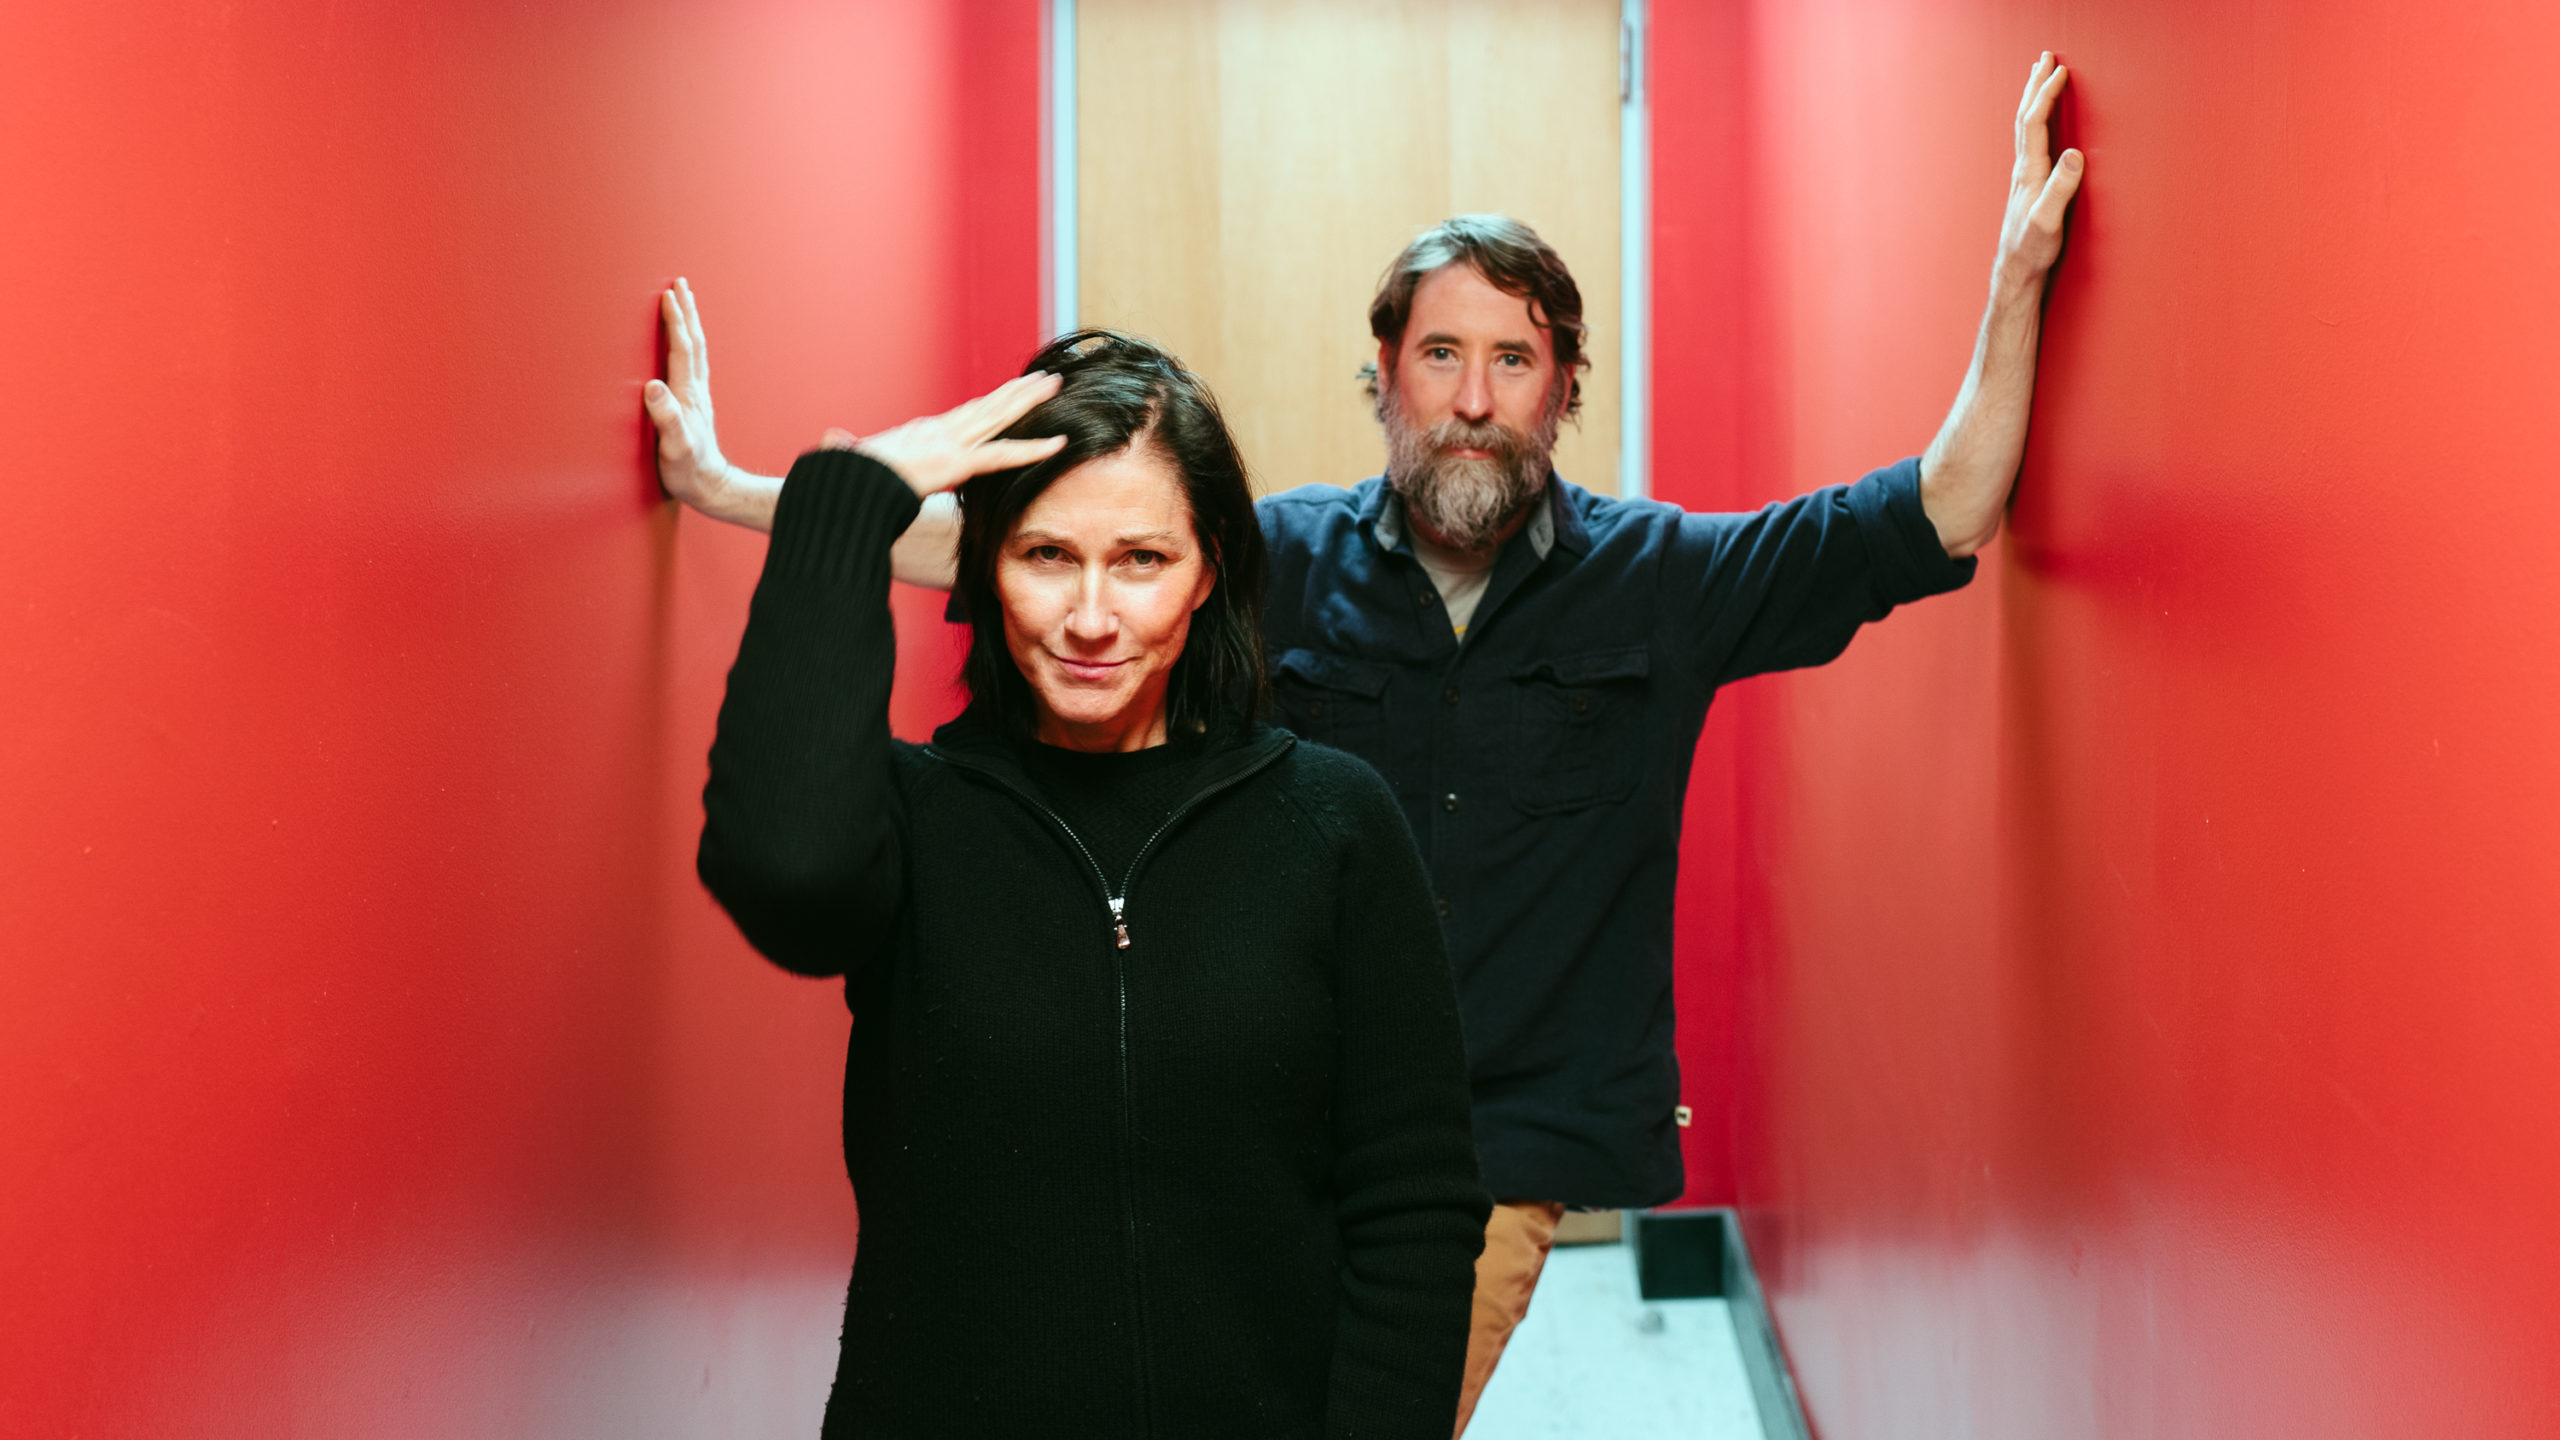 Kelley Deal and Mike Montgomery of R.Ring.